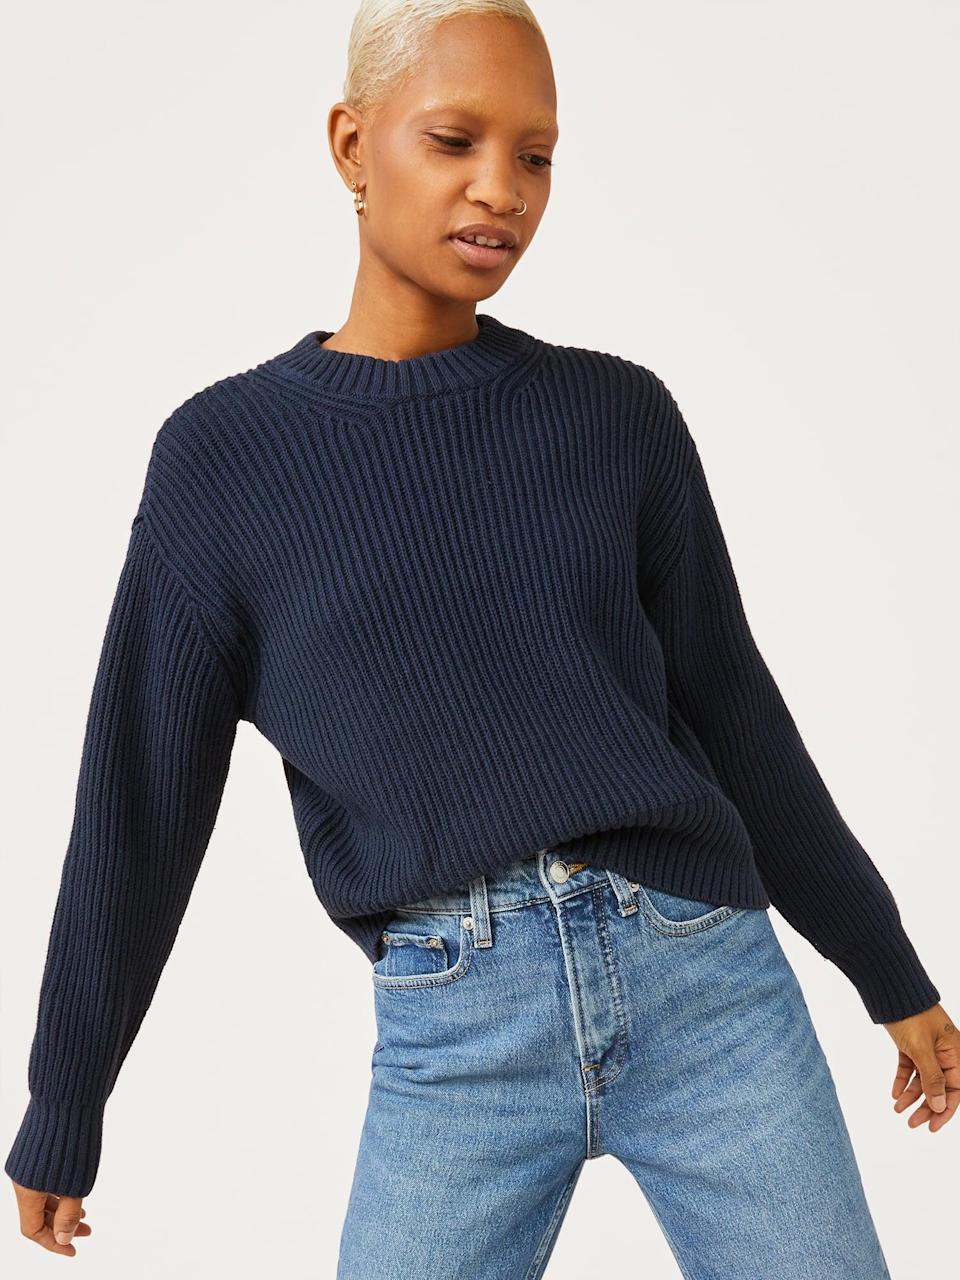 <p>Doesn't this <span>Free Assembly Women's Crewneck Sweater</span> ($26) look luxe? For a casual look, simply team it with a pair of jeans, but to dress it up, consider accessorizing it with a necklace and earrings.</p>